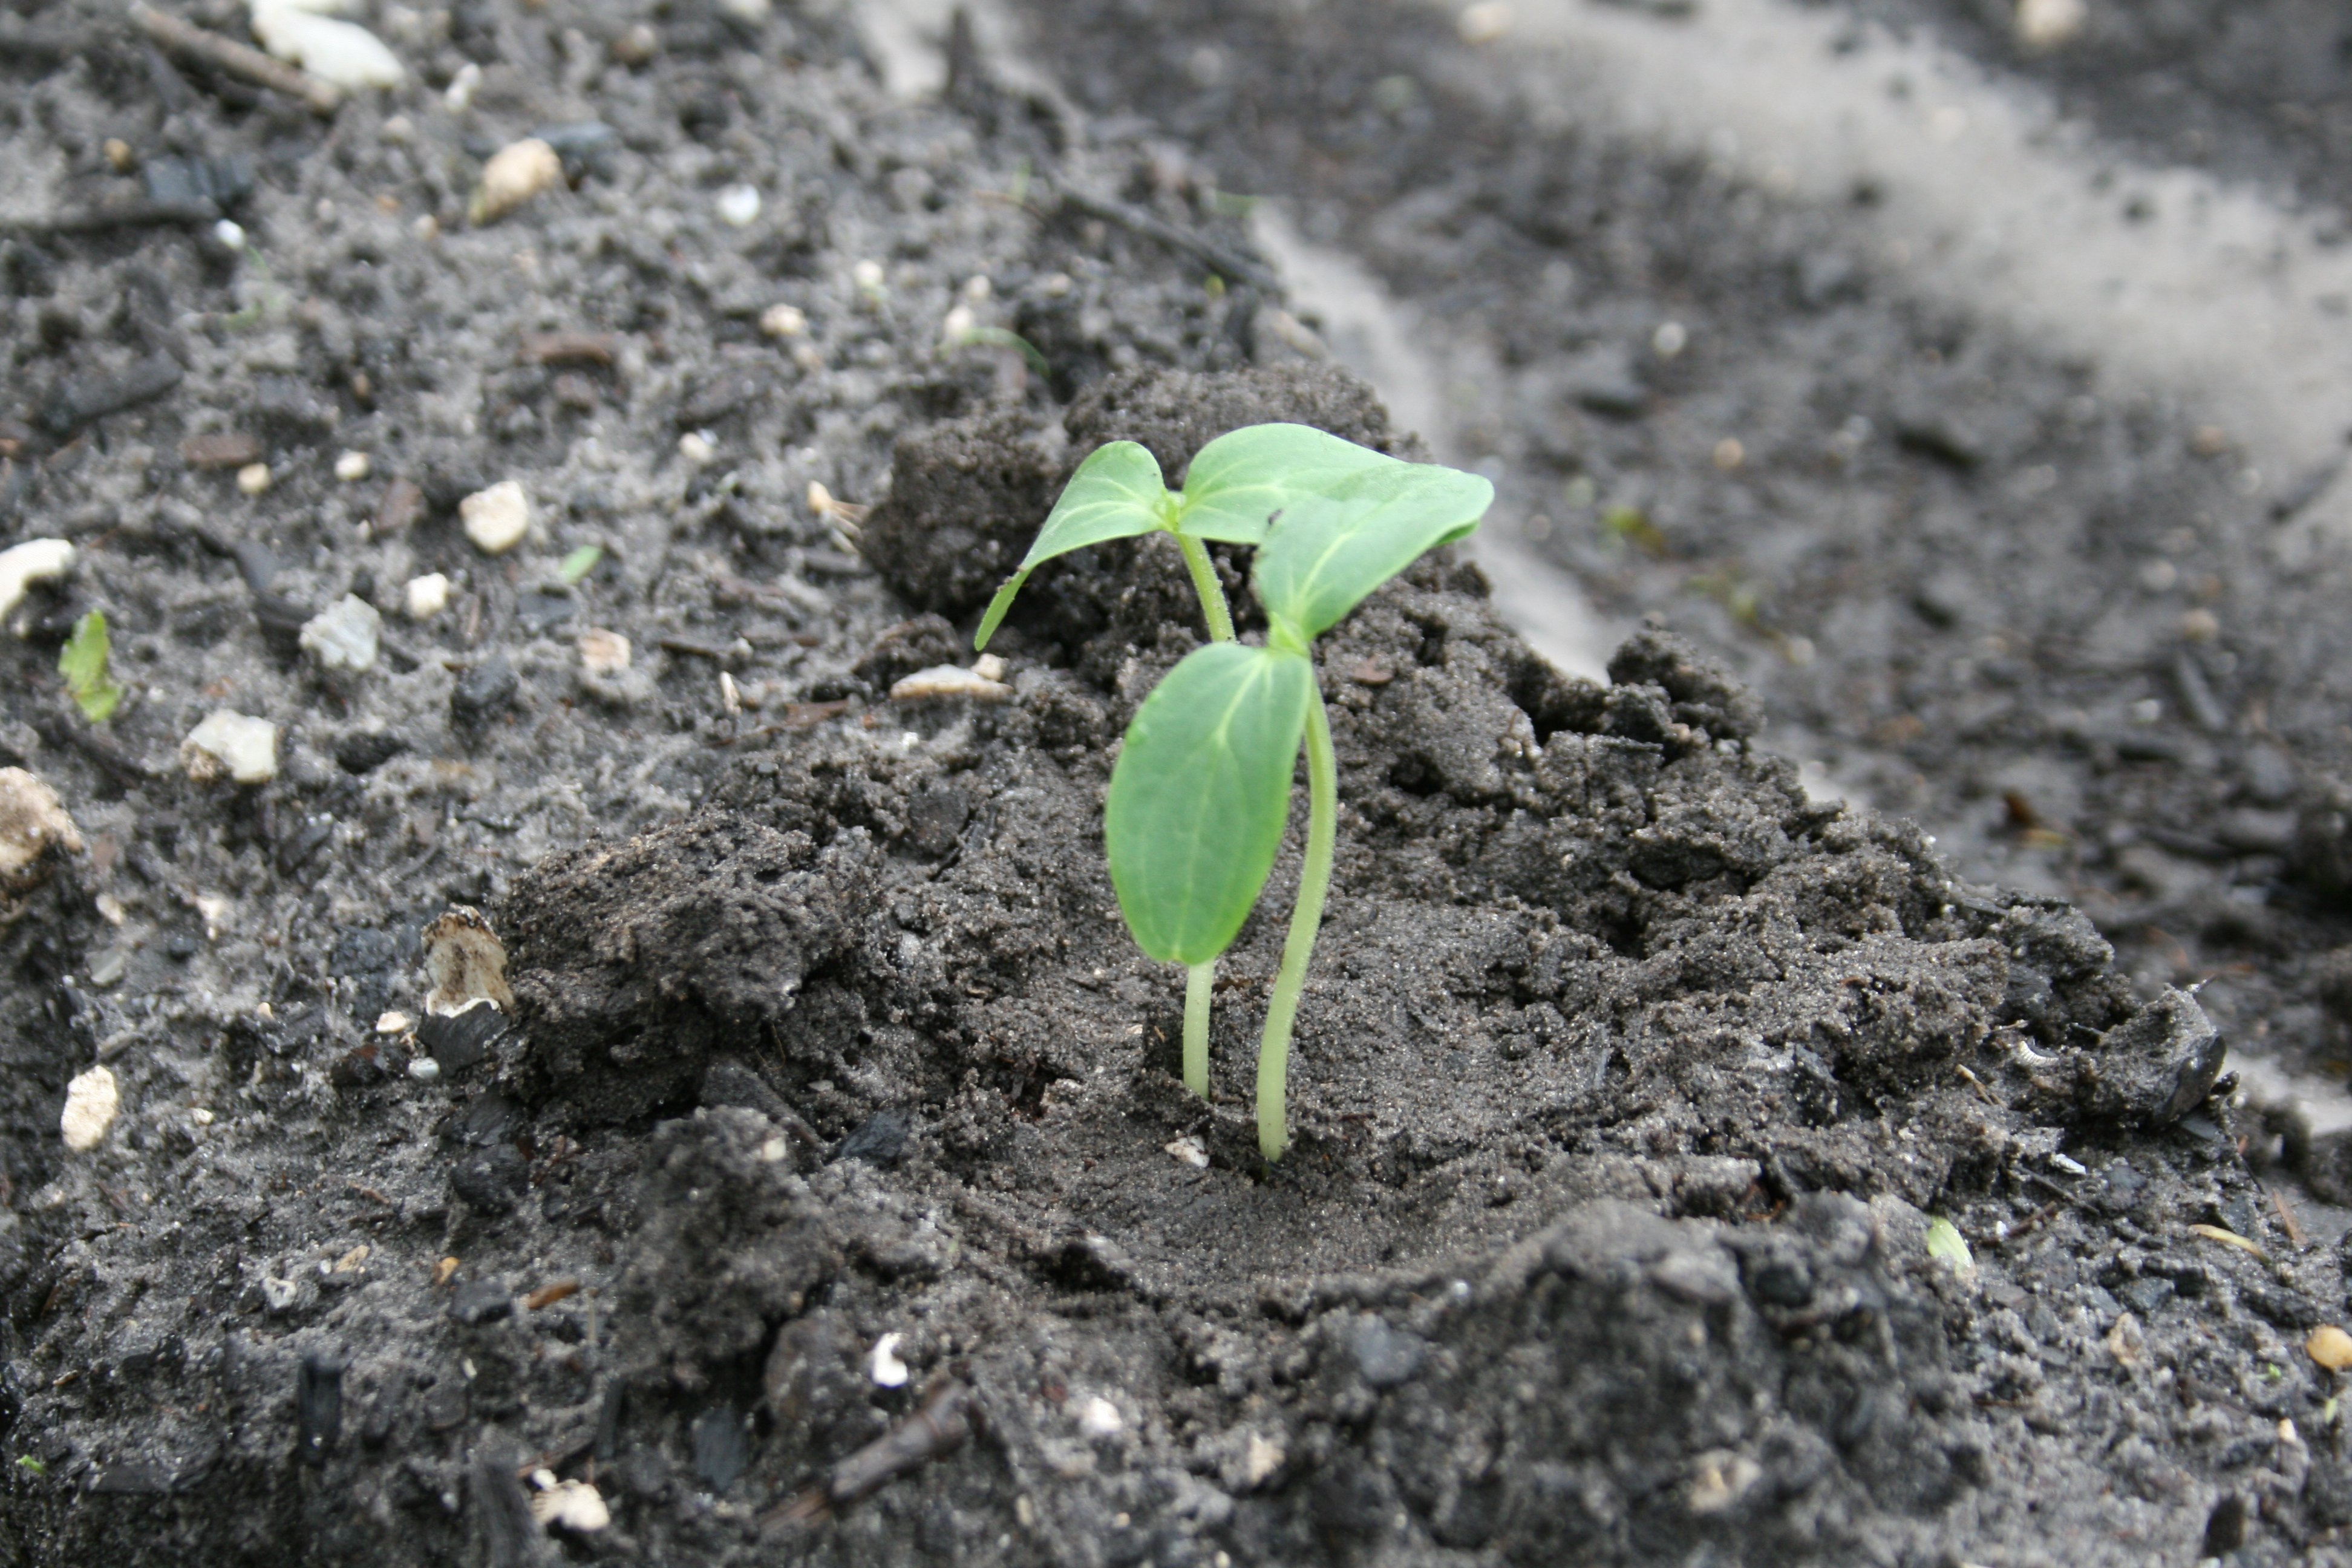 Naturally loriel egg carton gardening uhh the roots for When to transplant lemon tree seedlings